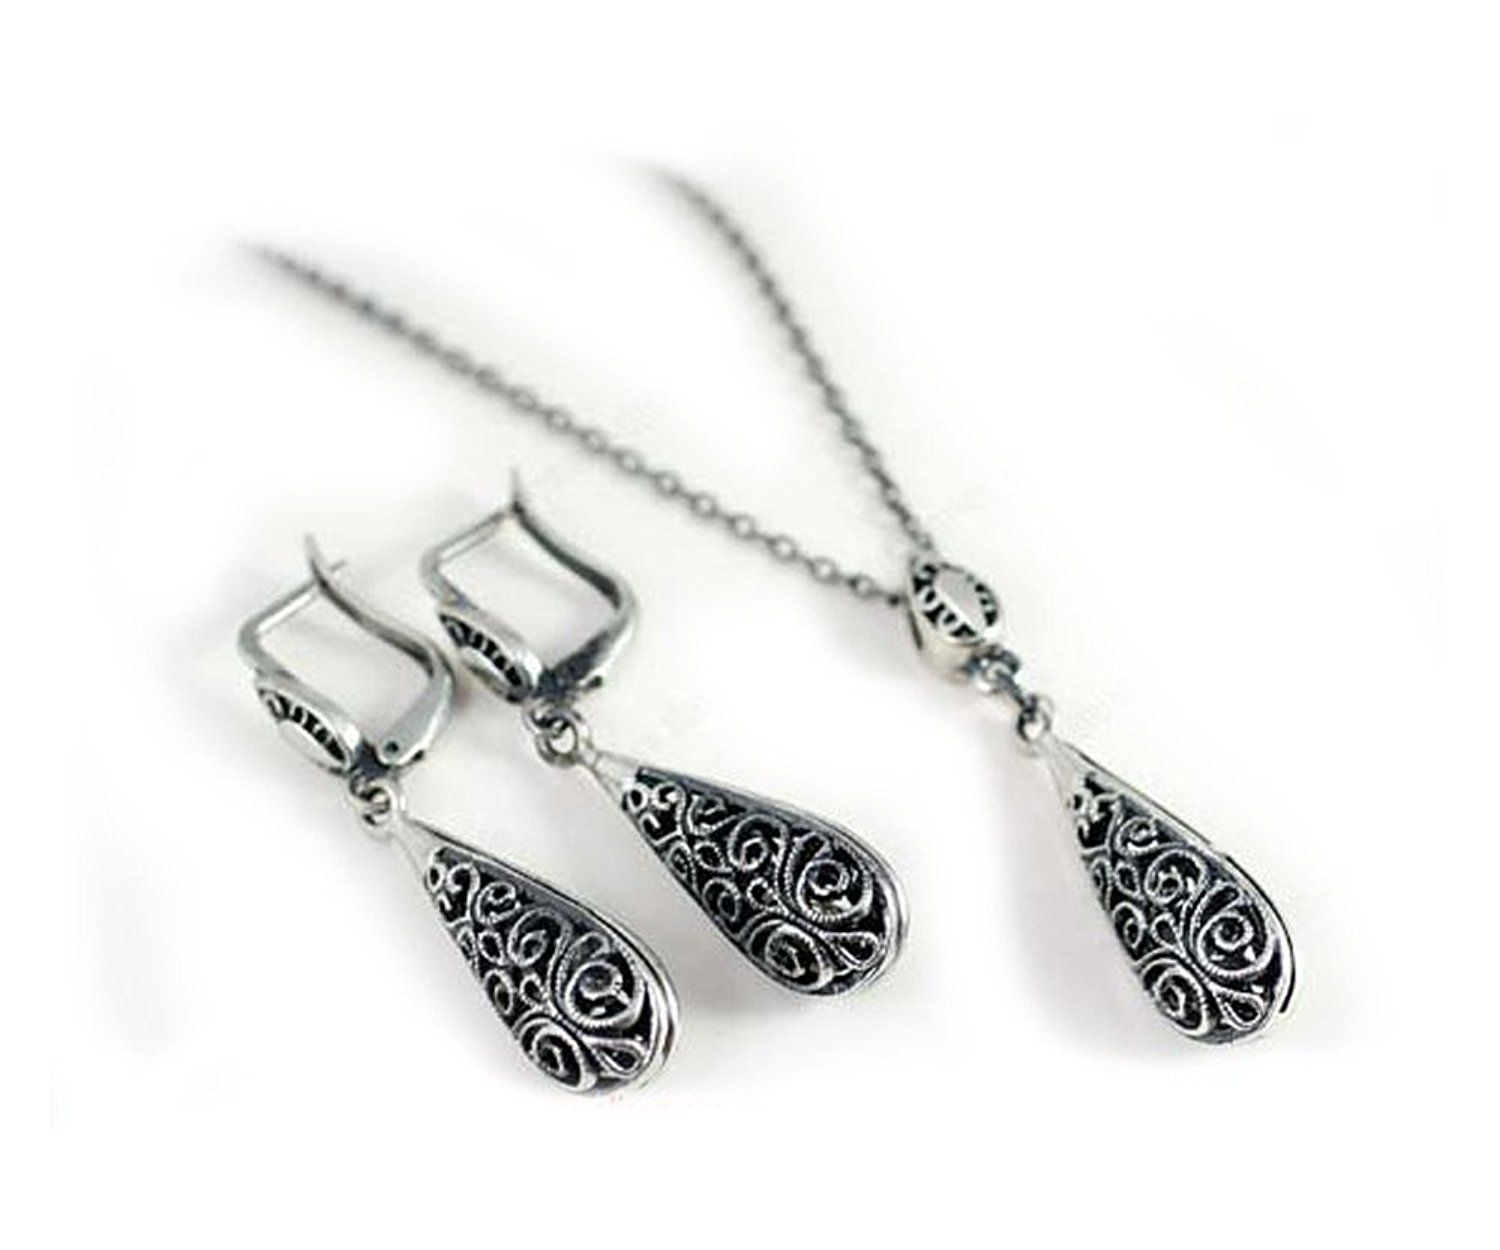 Signoresignori droplet pendant necklace and earrings set white